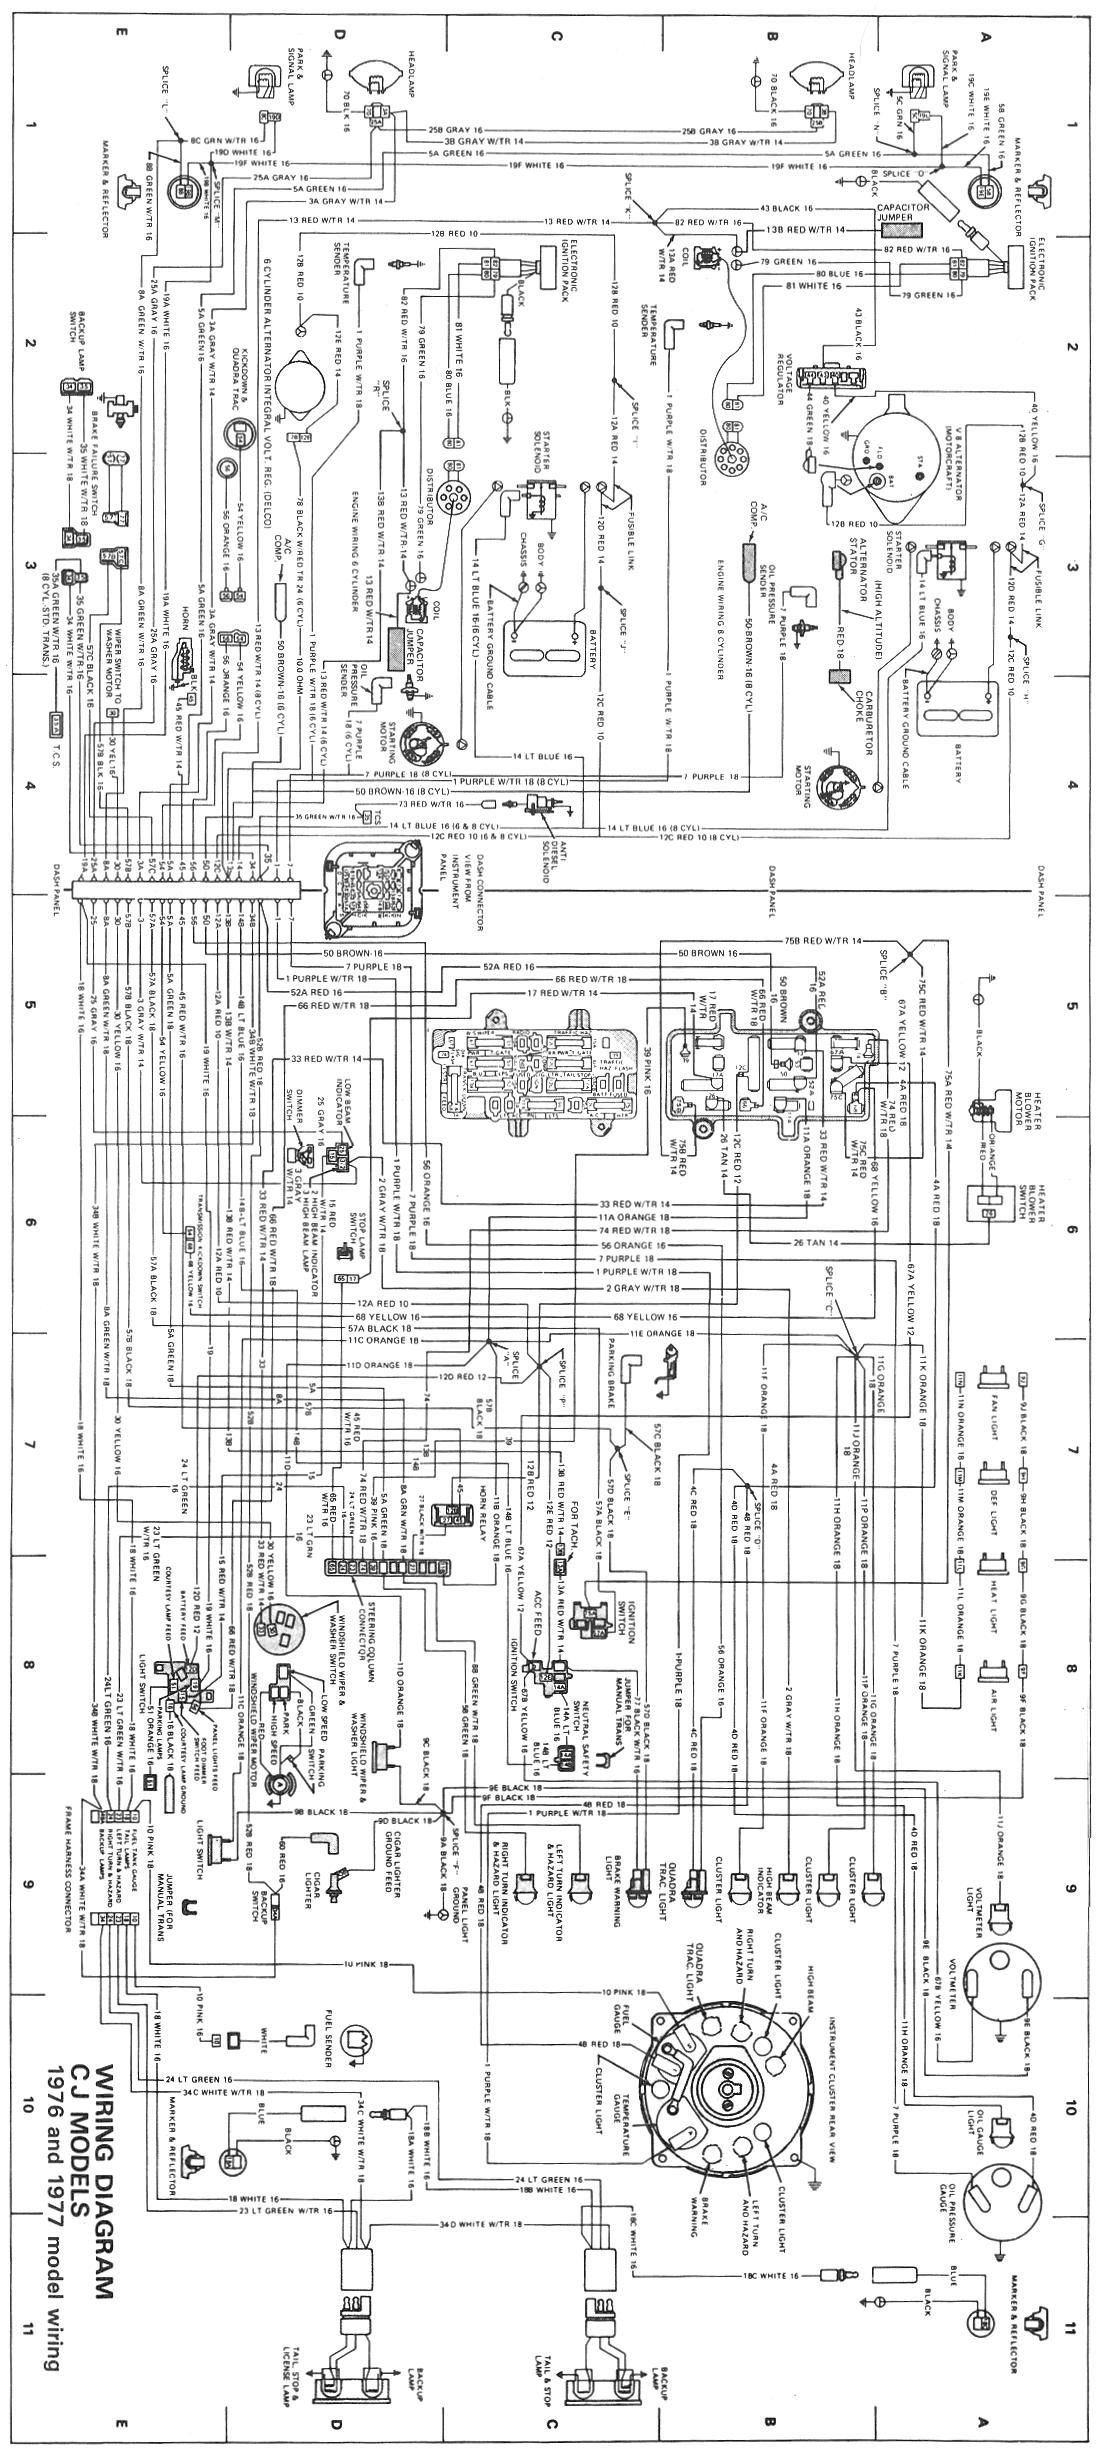 8d25ded6e3673519e155875e09844e5e cj wiring diagram 1976 1977 jpg 1,100�2,459 pixels 1976 jeep cj5 82 jeep cj7 wiring diagram at n-0.co